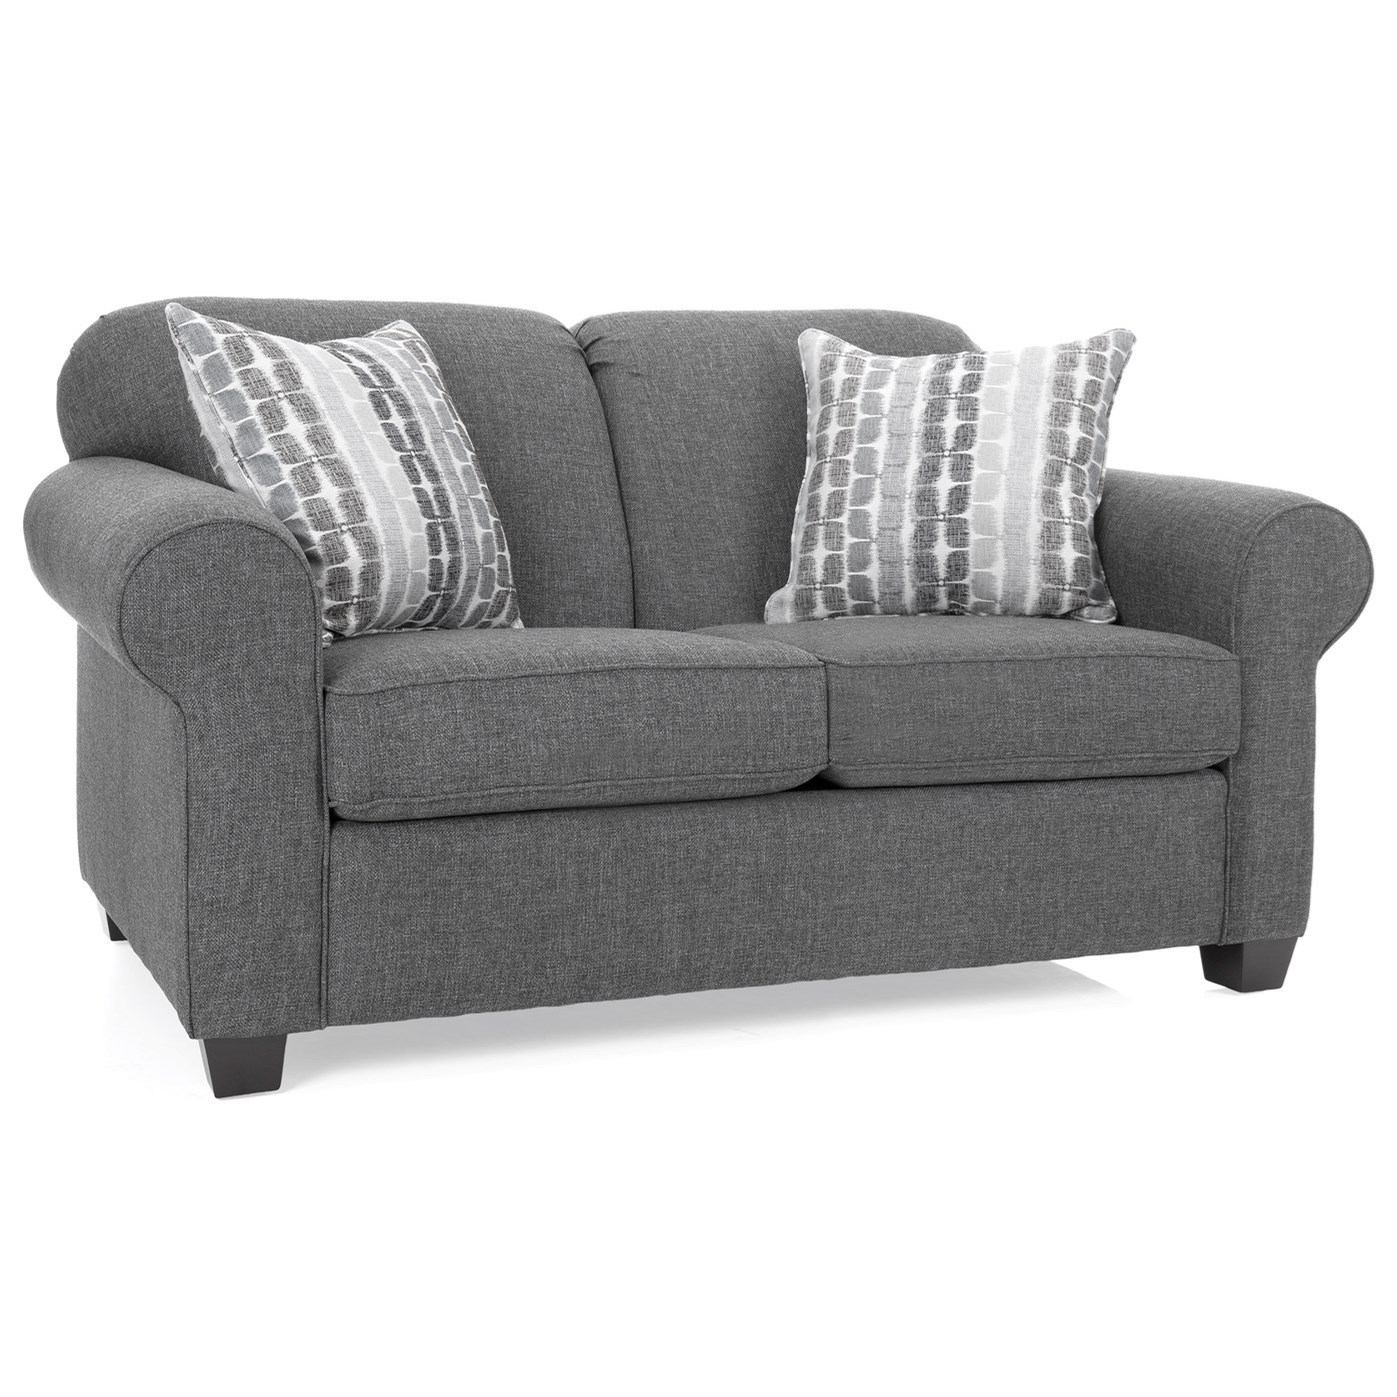 2455 Casual Loveseat by Decor-Rest at Reid's Furniture